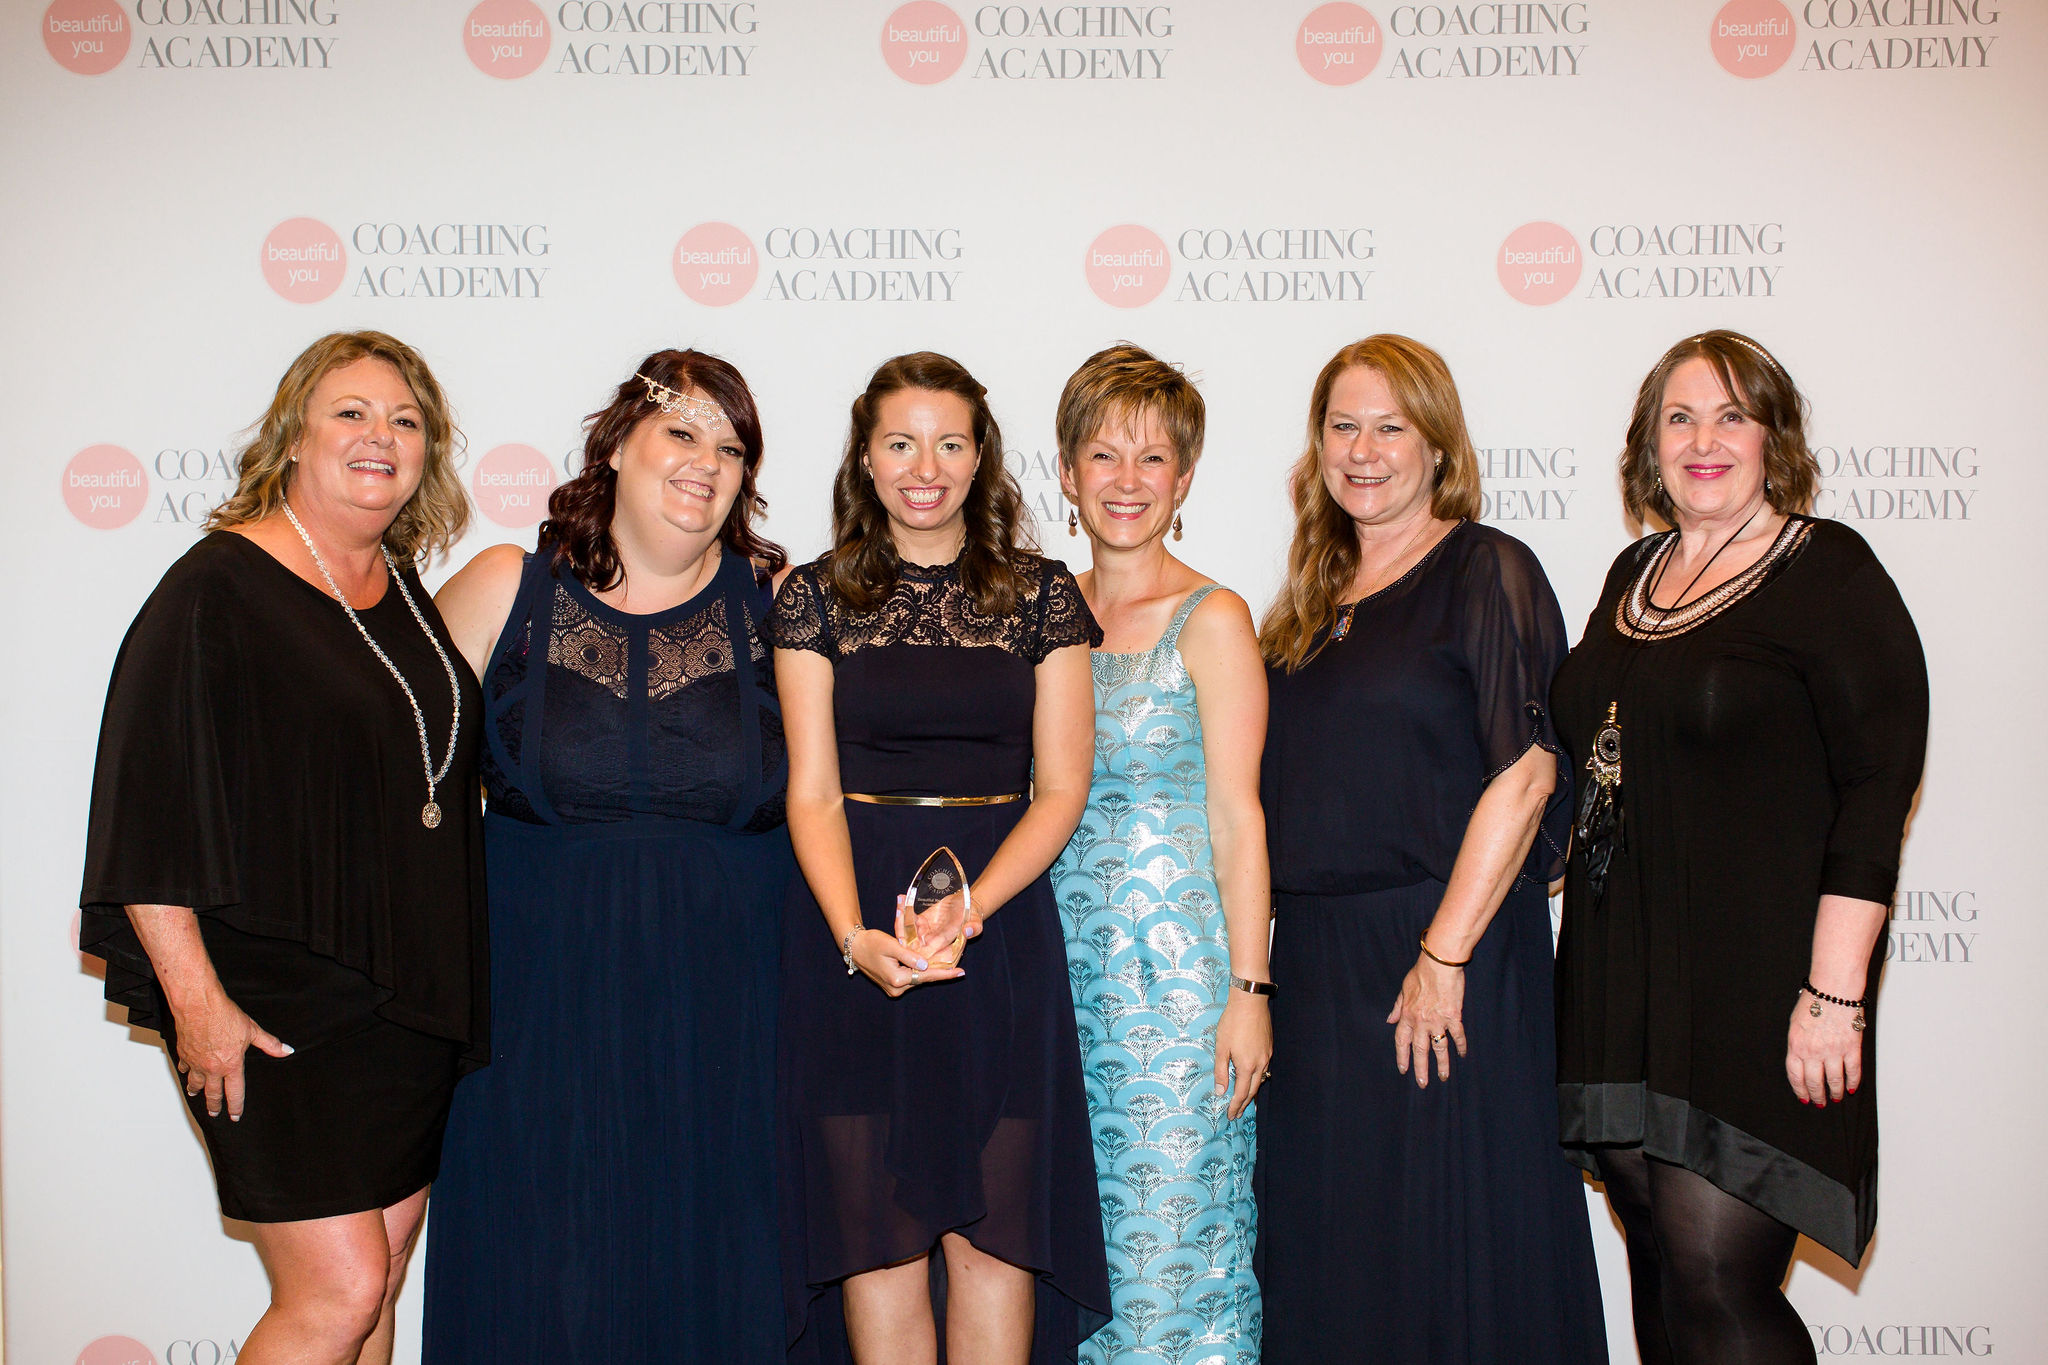 Reflections on Winning the CEO Shine Award at the Beautiful You Coaching Academy Awards